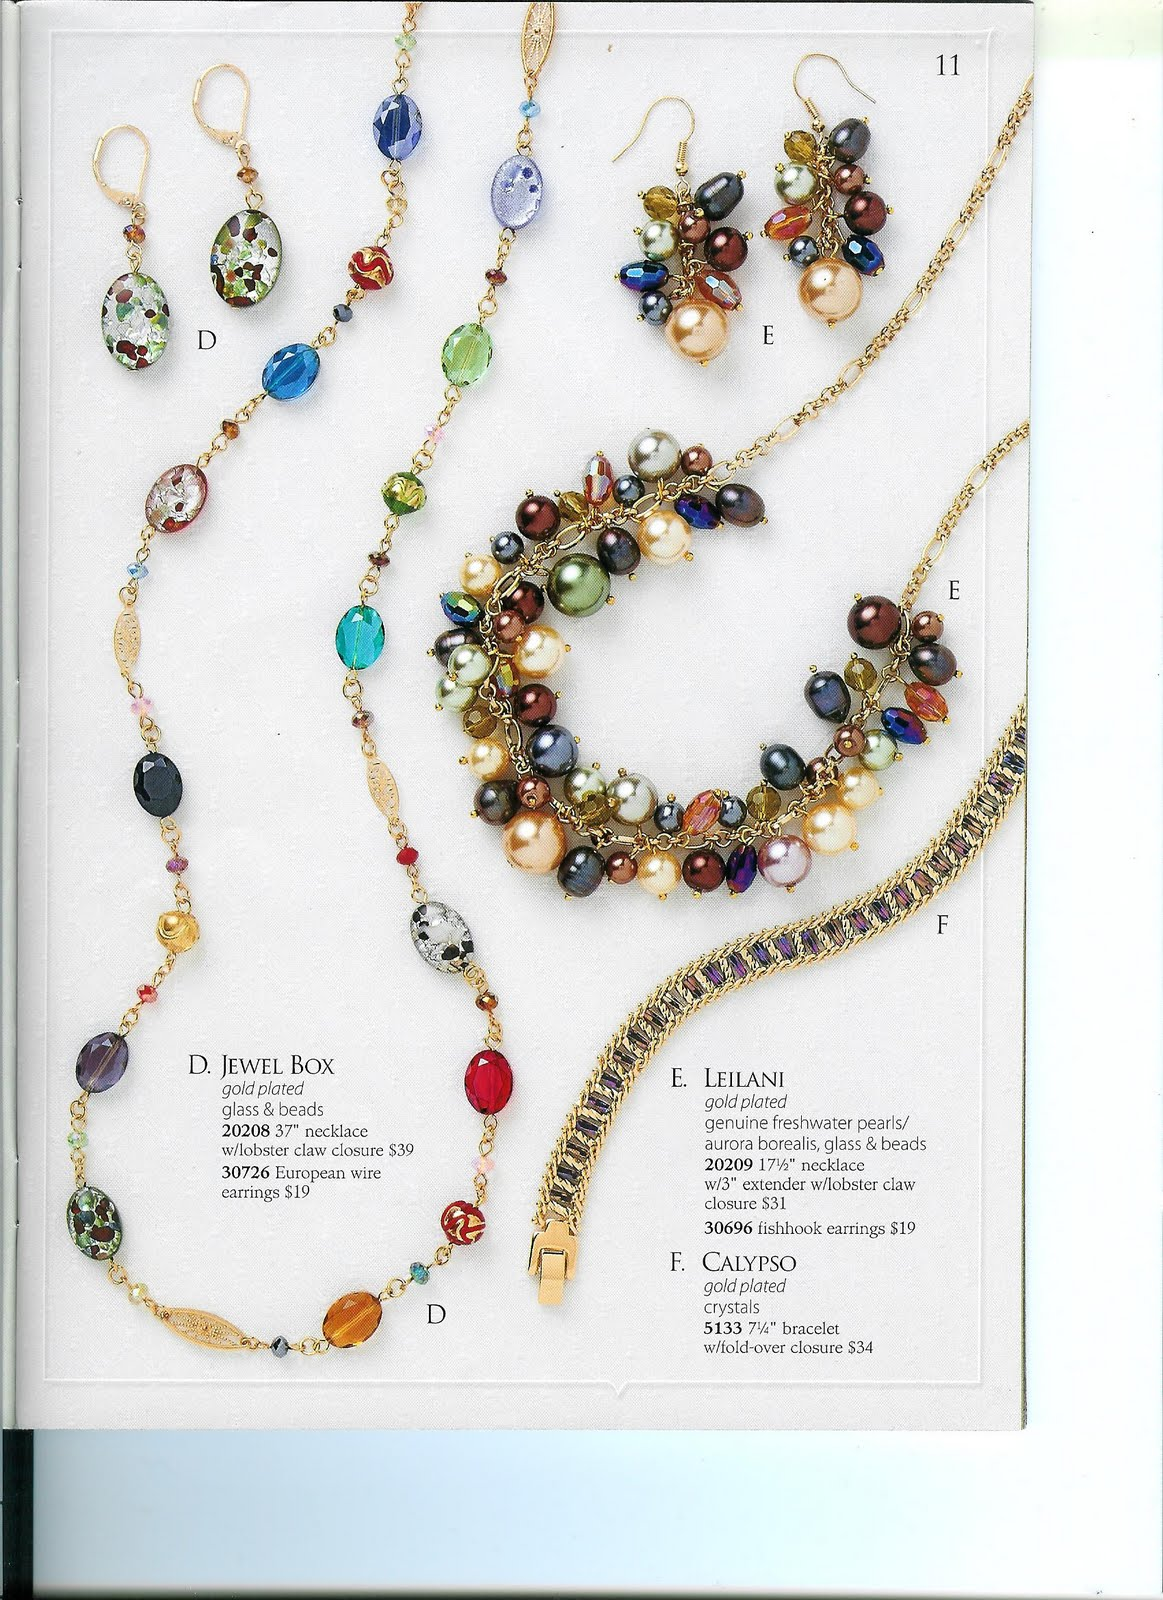 premier jewelry catalog 2012 pdfpremier jewelry catalog